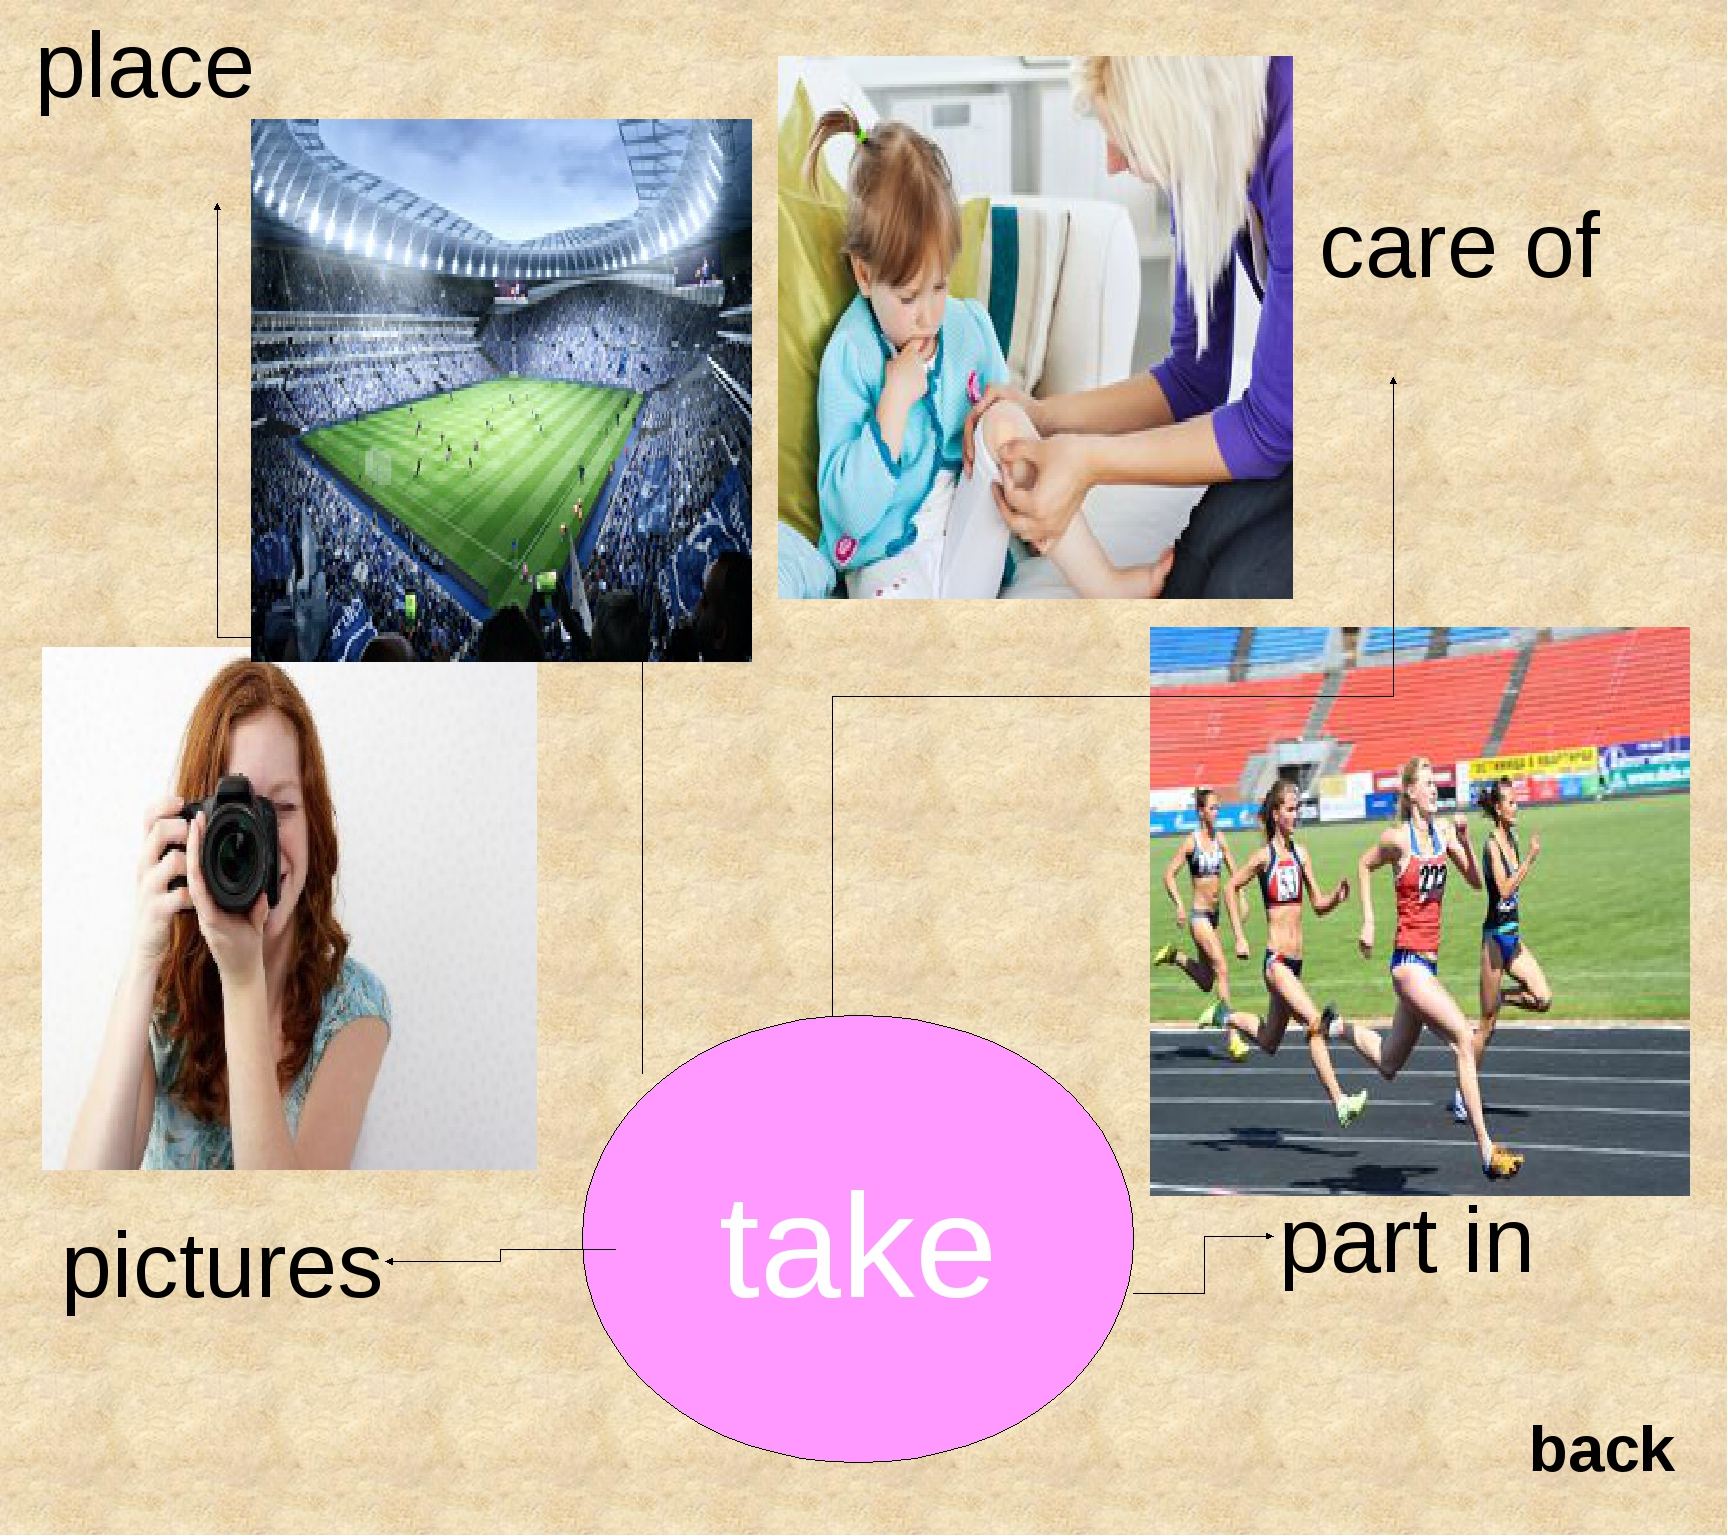 take place pictures care of part in back